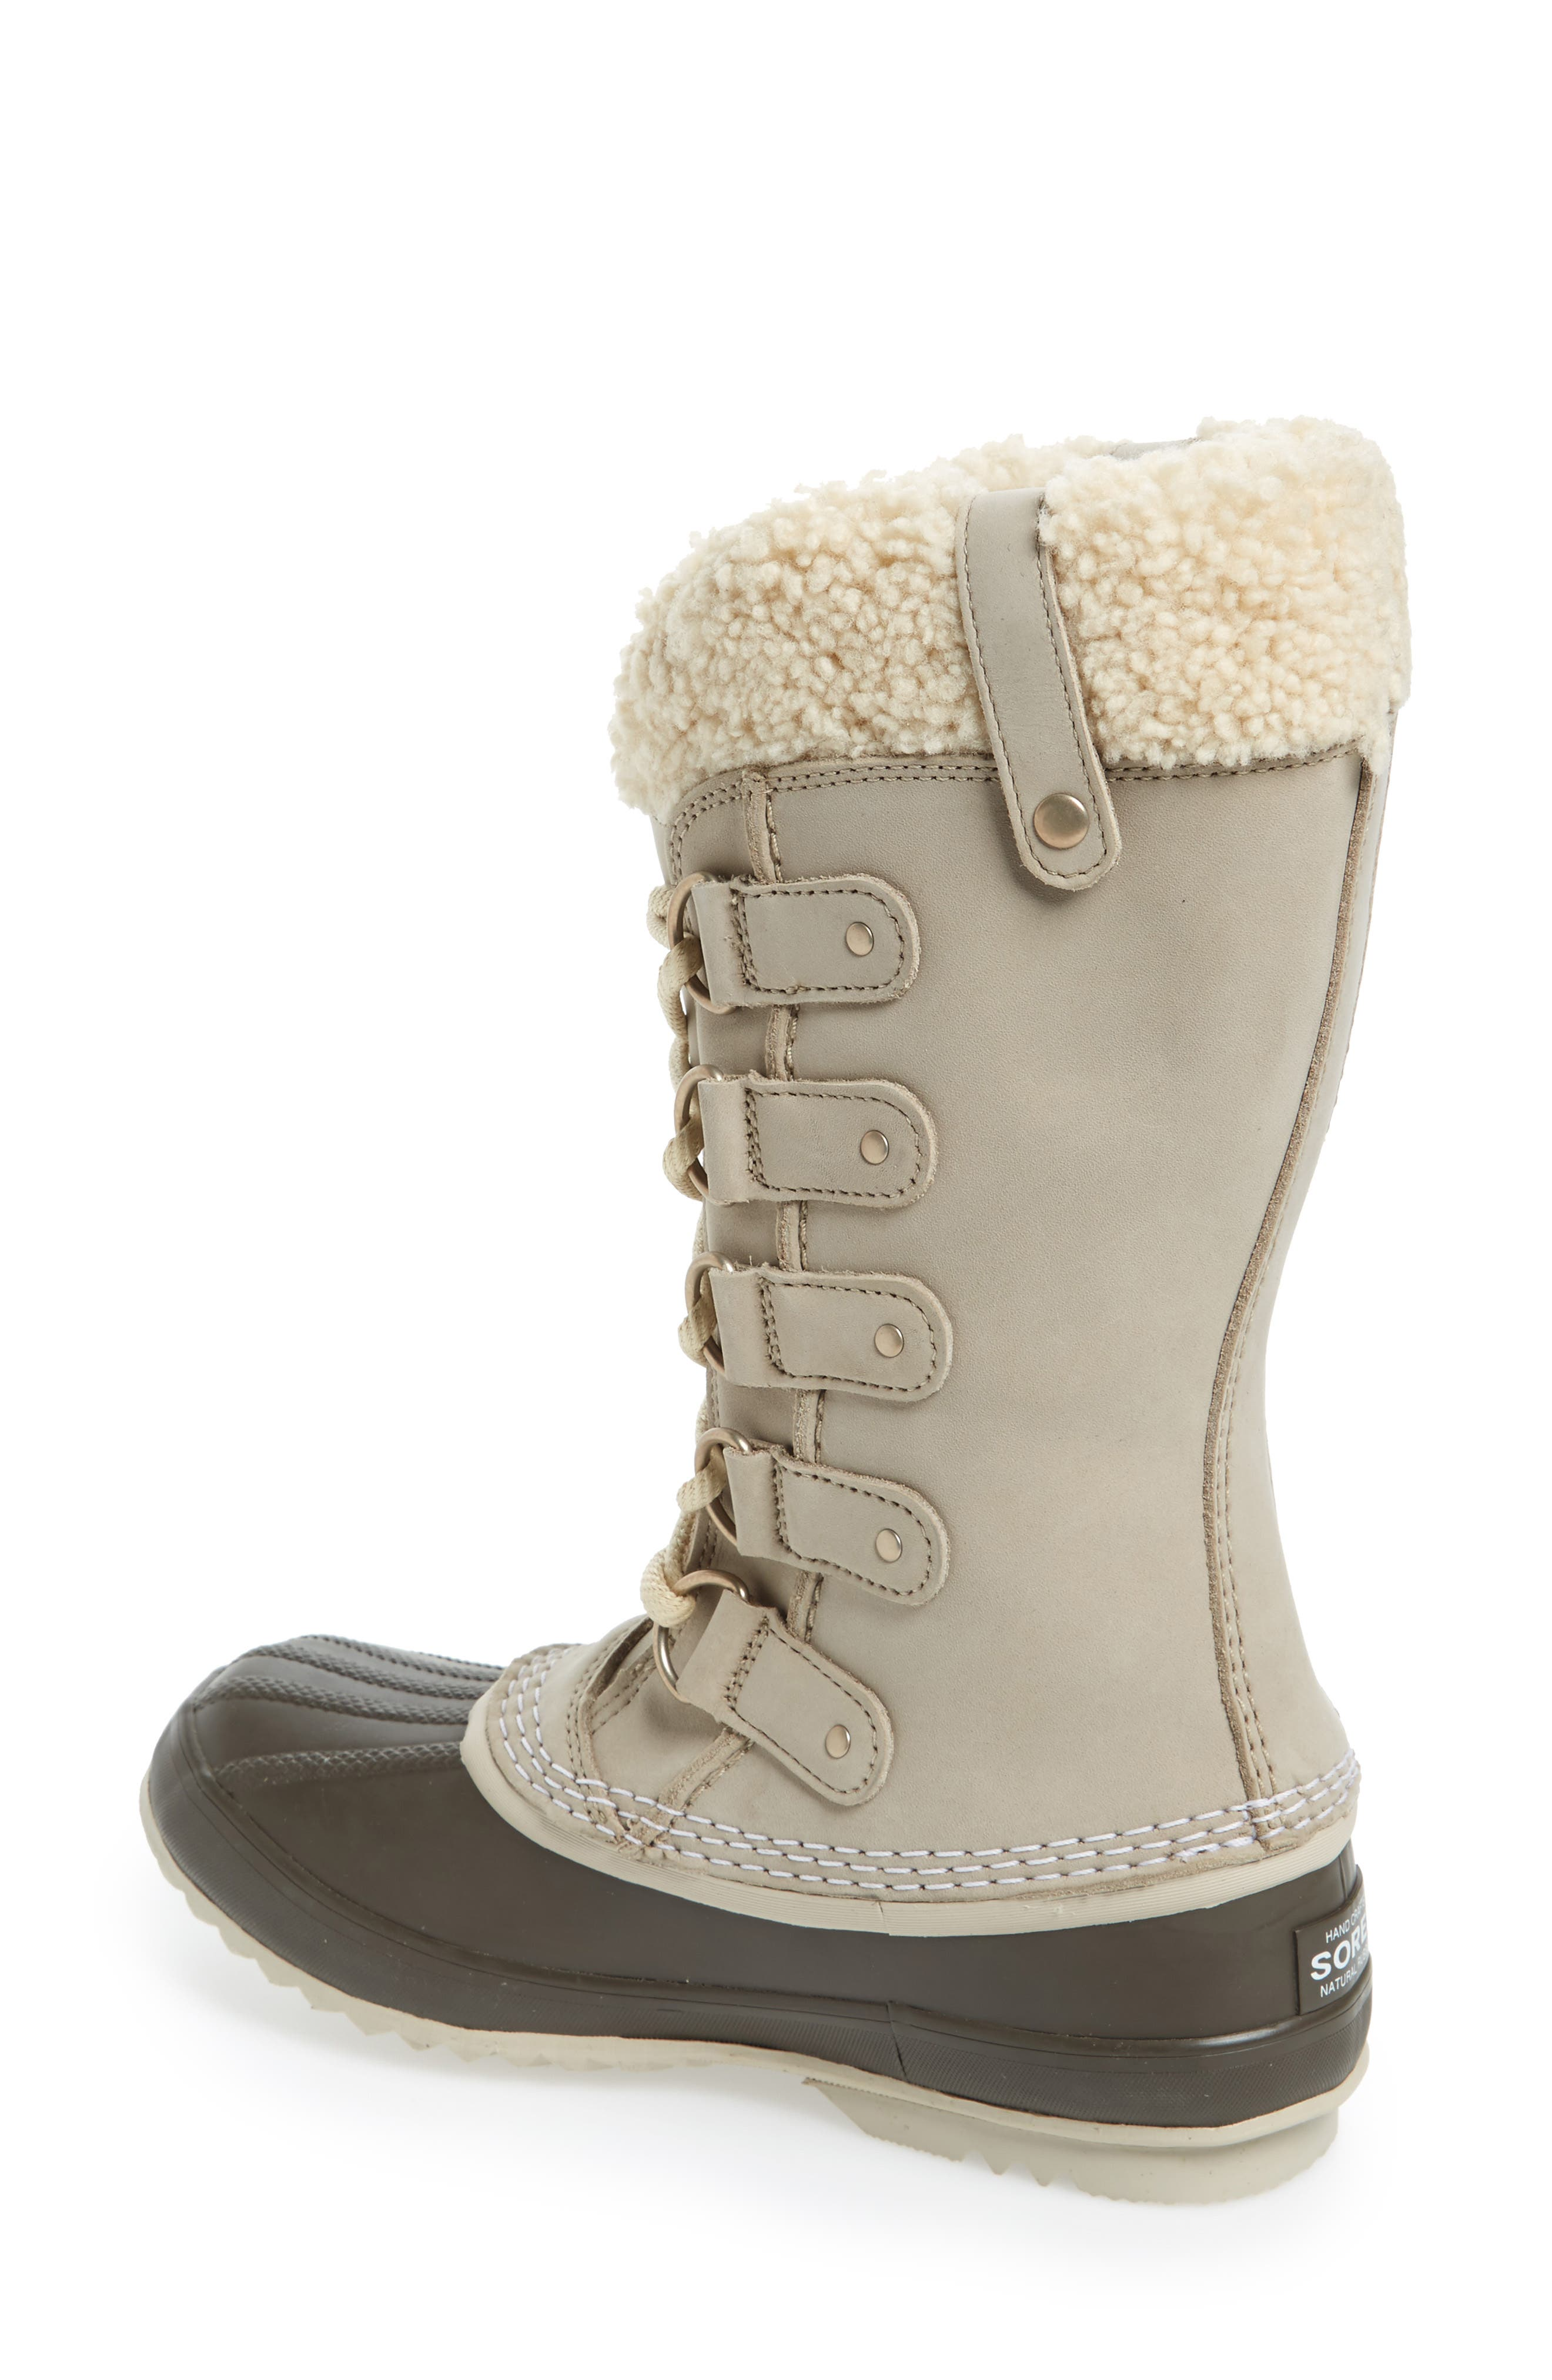 Joan of Arctic<sup>™</sup> Lux Waterproof Winter Boot with Genuine  Shearling Cuff,                             Alternate thumbnail 2, color,                             Ancient Fossil/ Mud